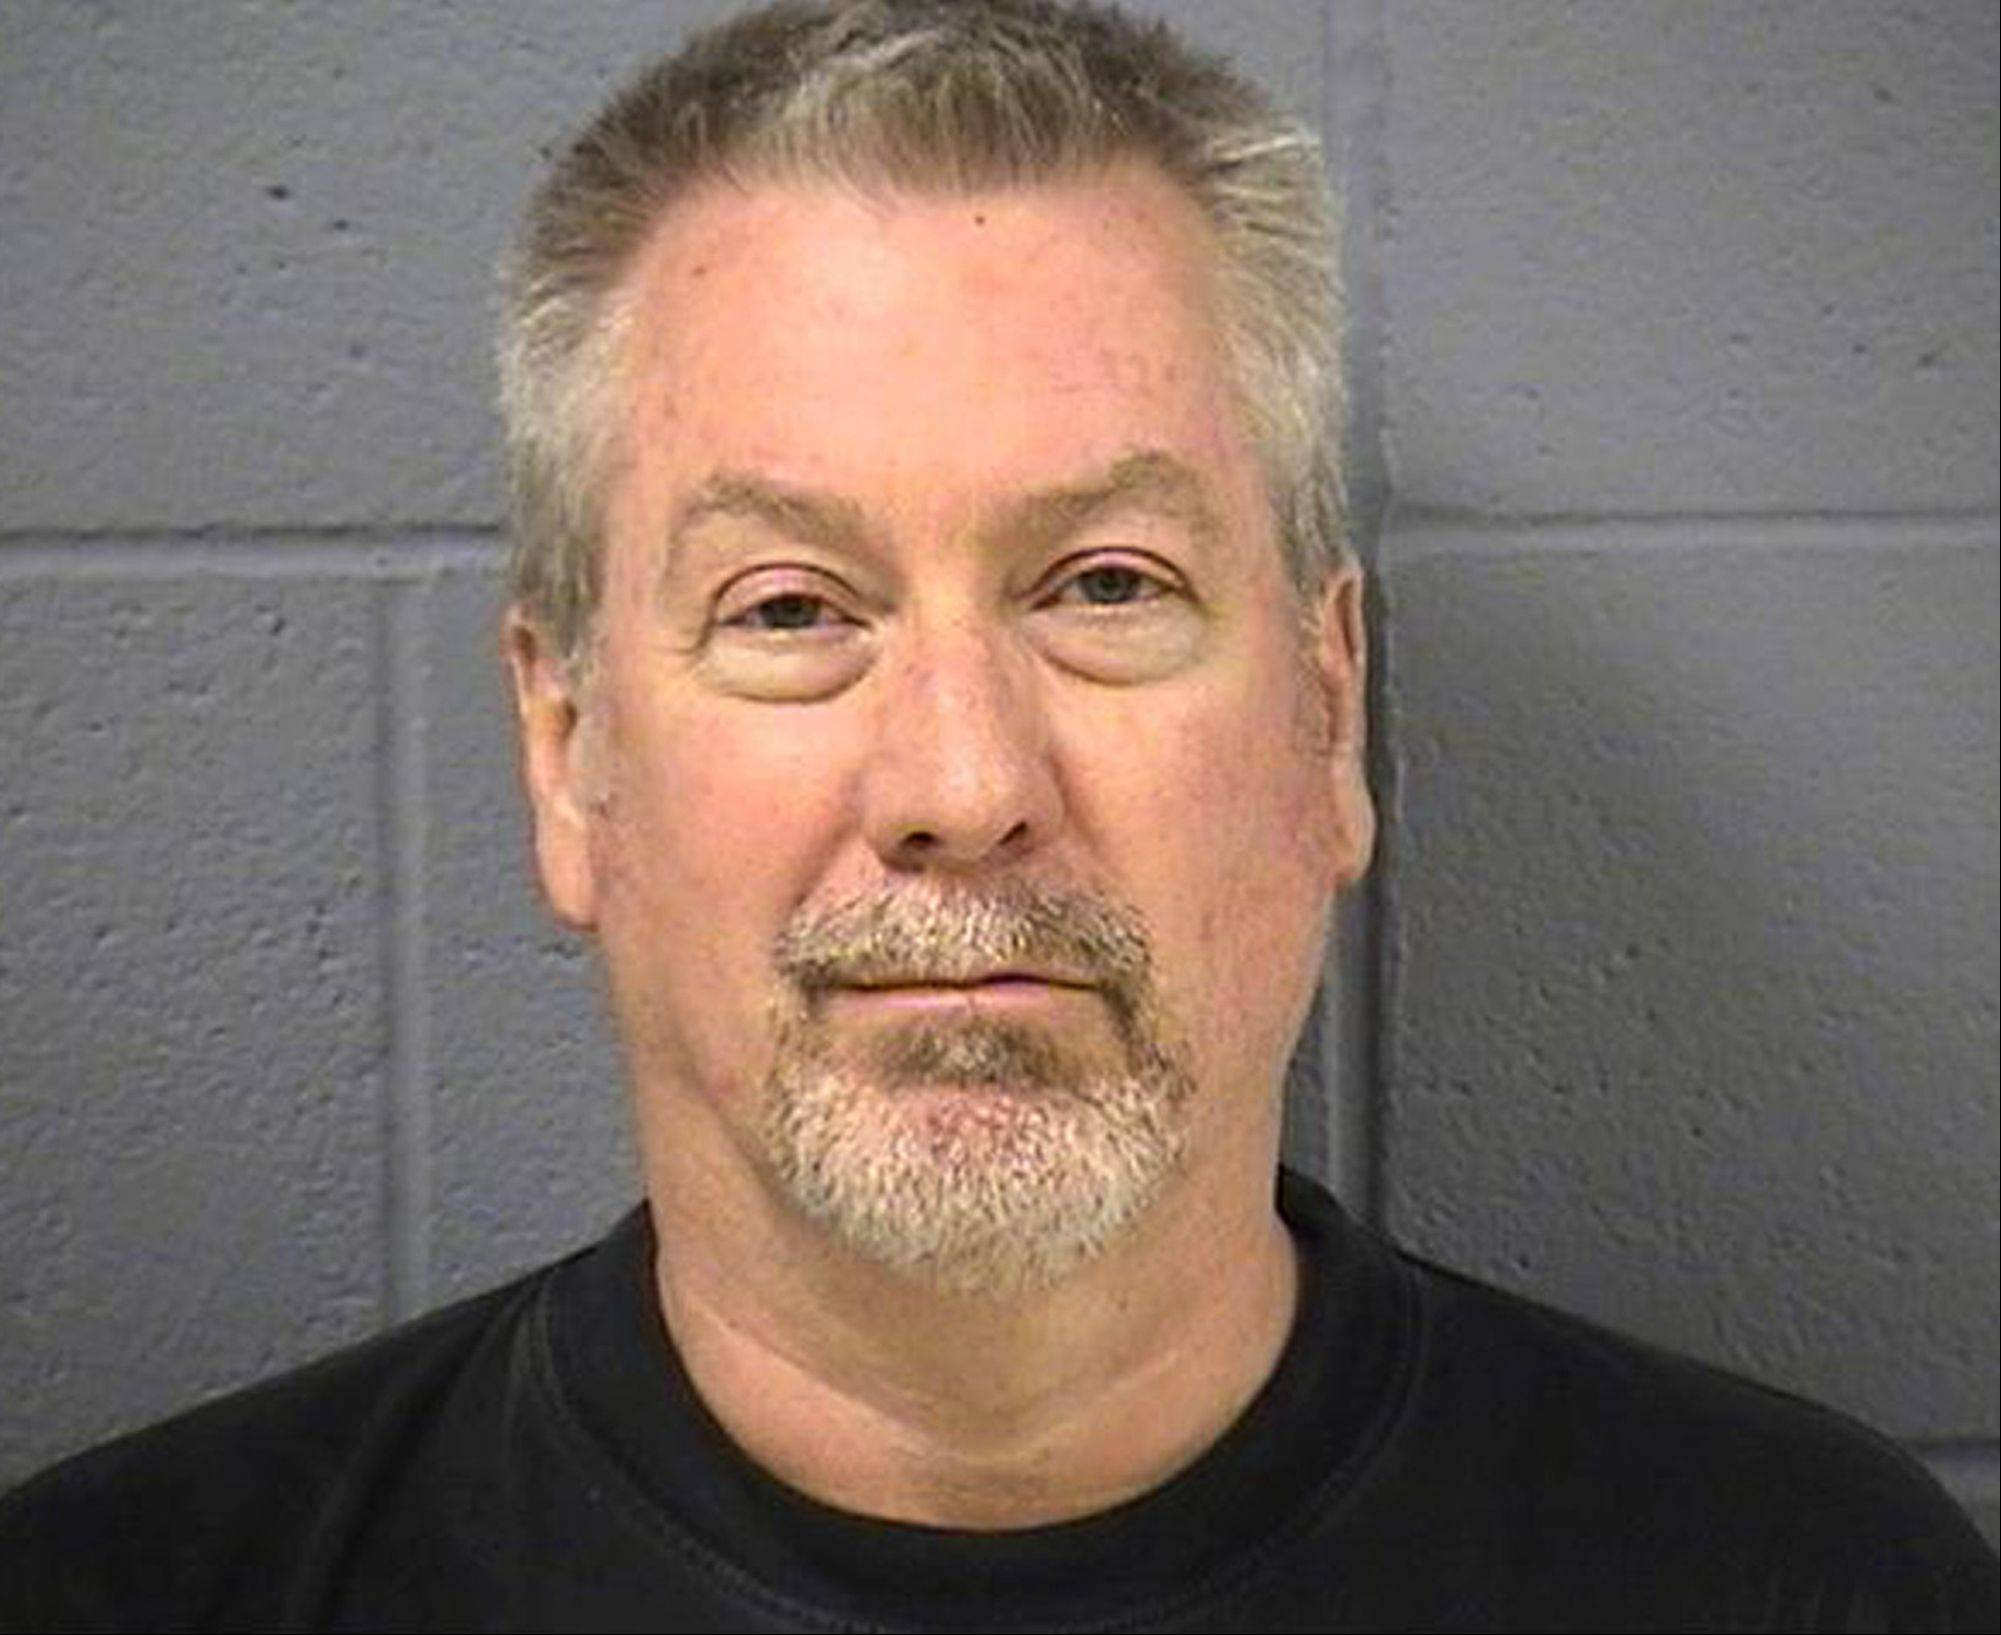 Drew Peterson is accused of killing his third wife in 2004.